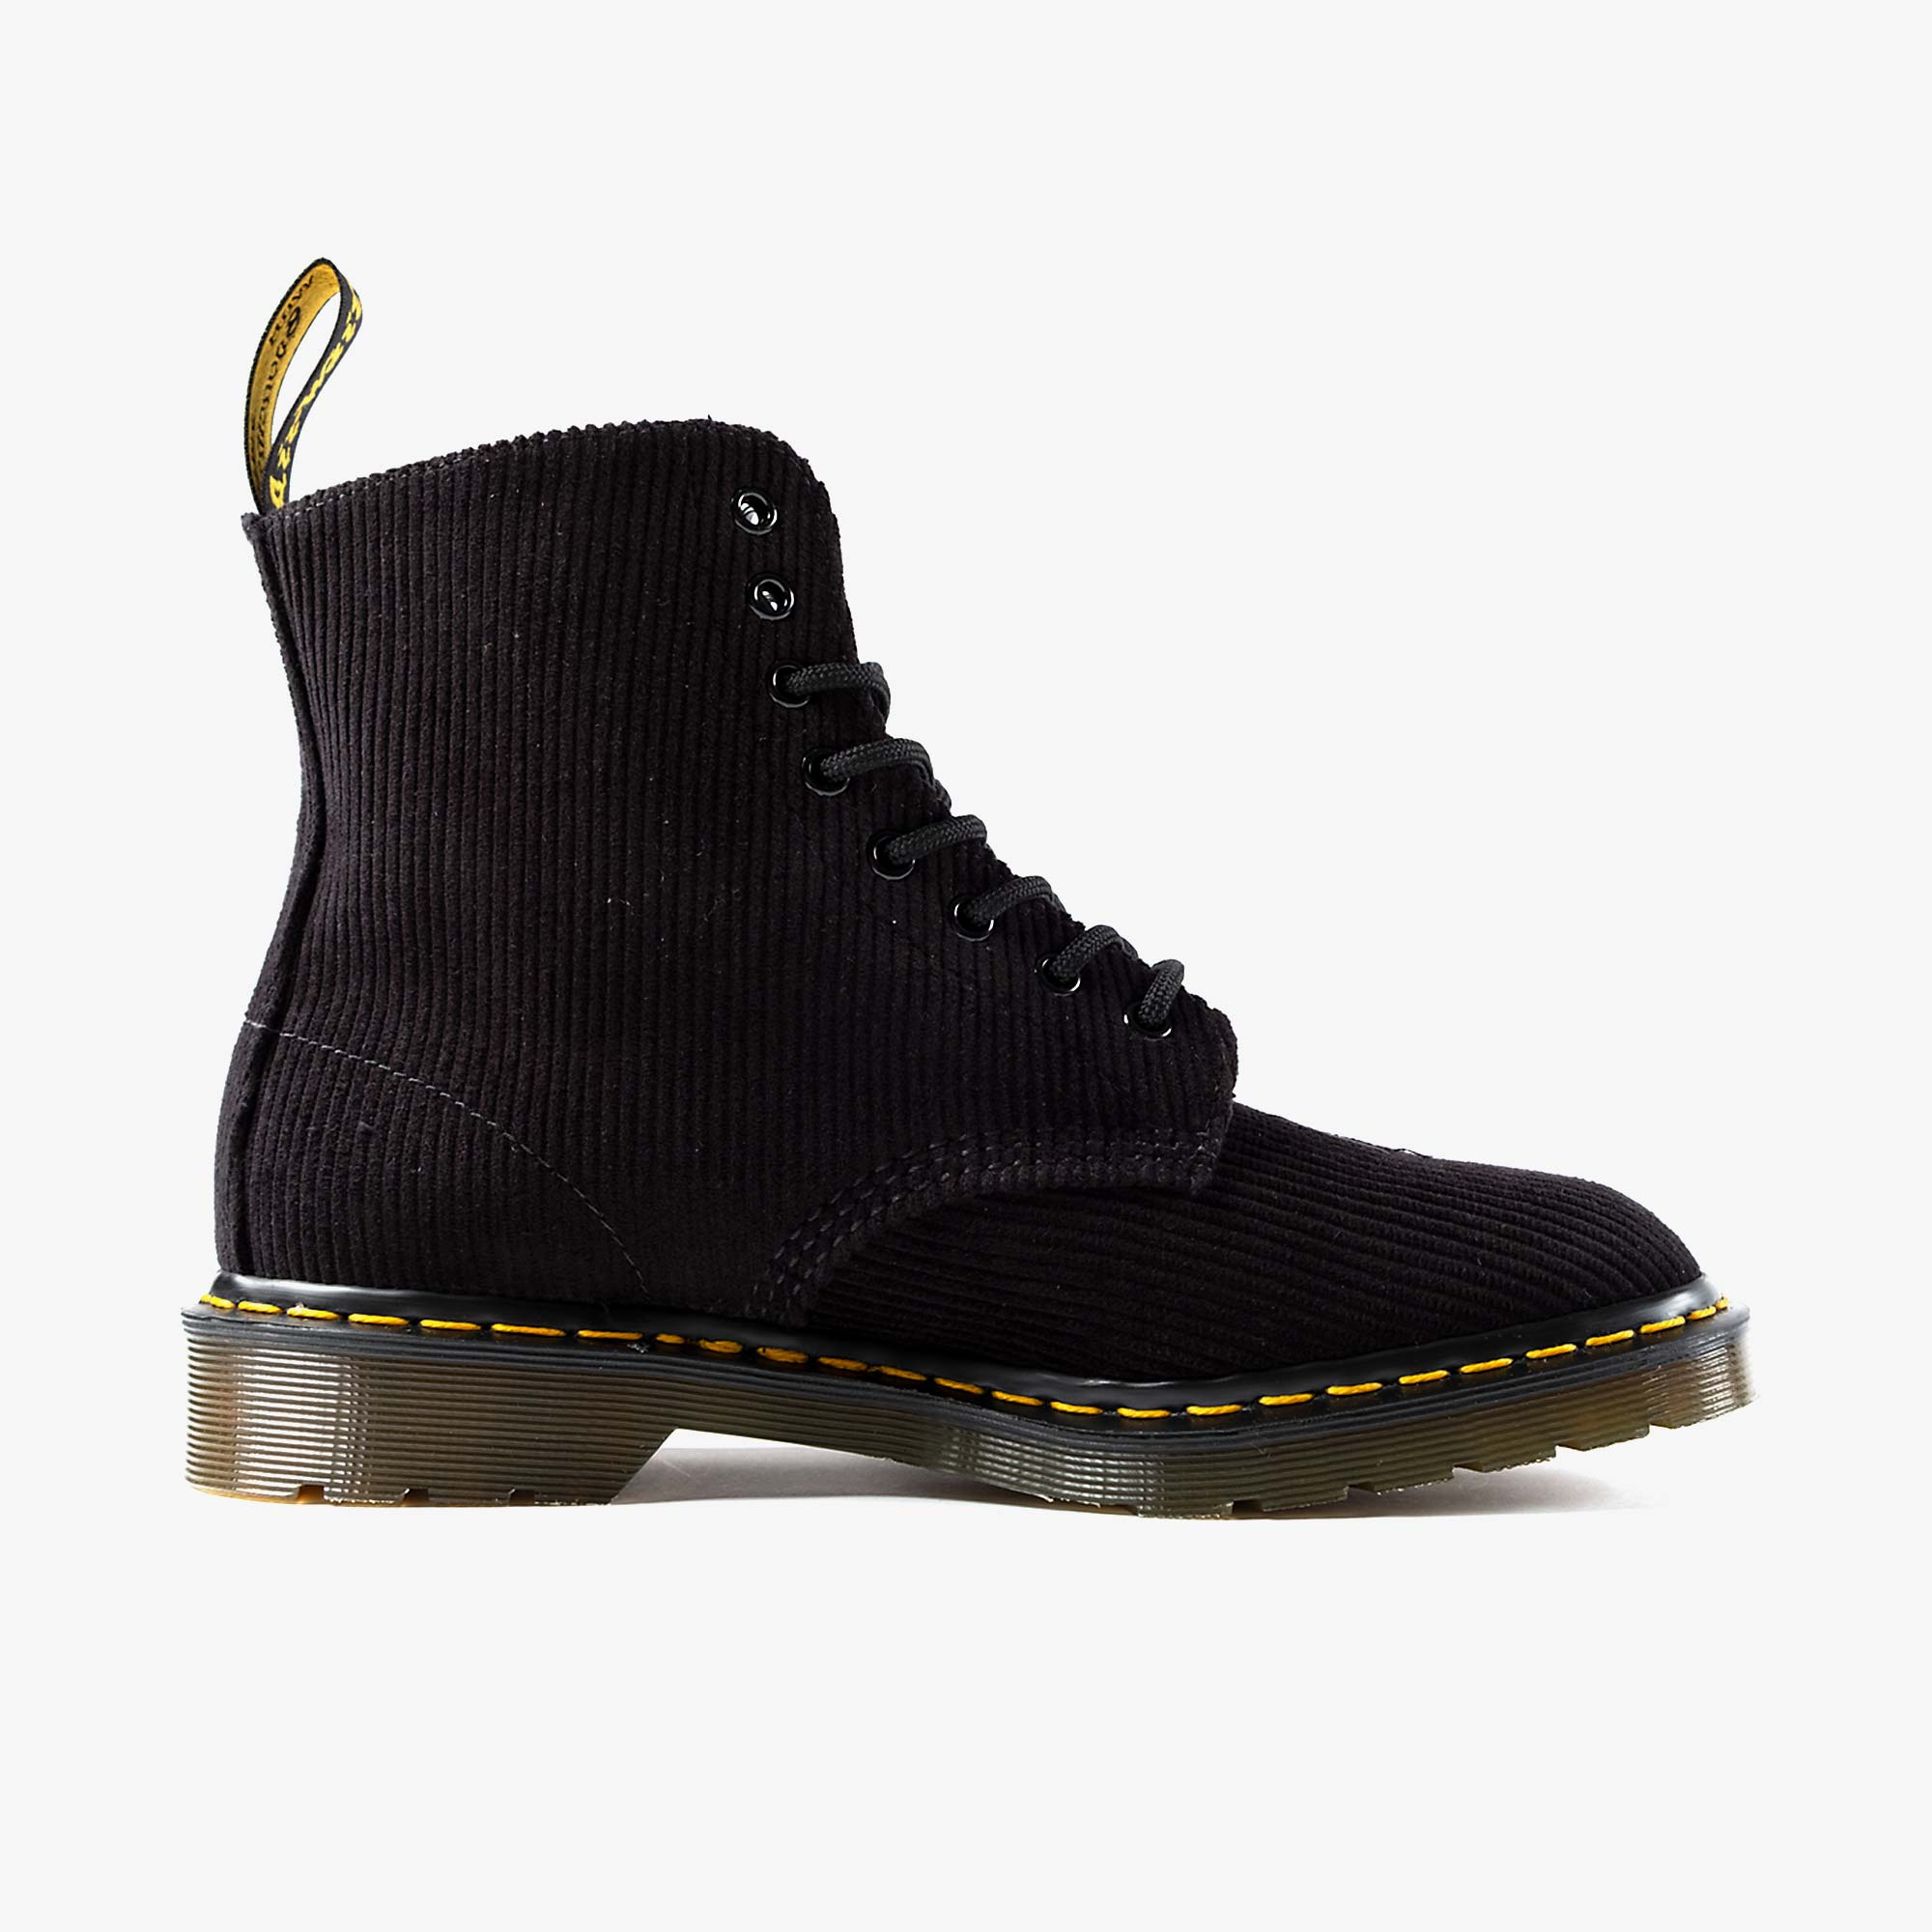 Undercover Undercover x Dr. Martens 1460 Corduroy - Black 5